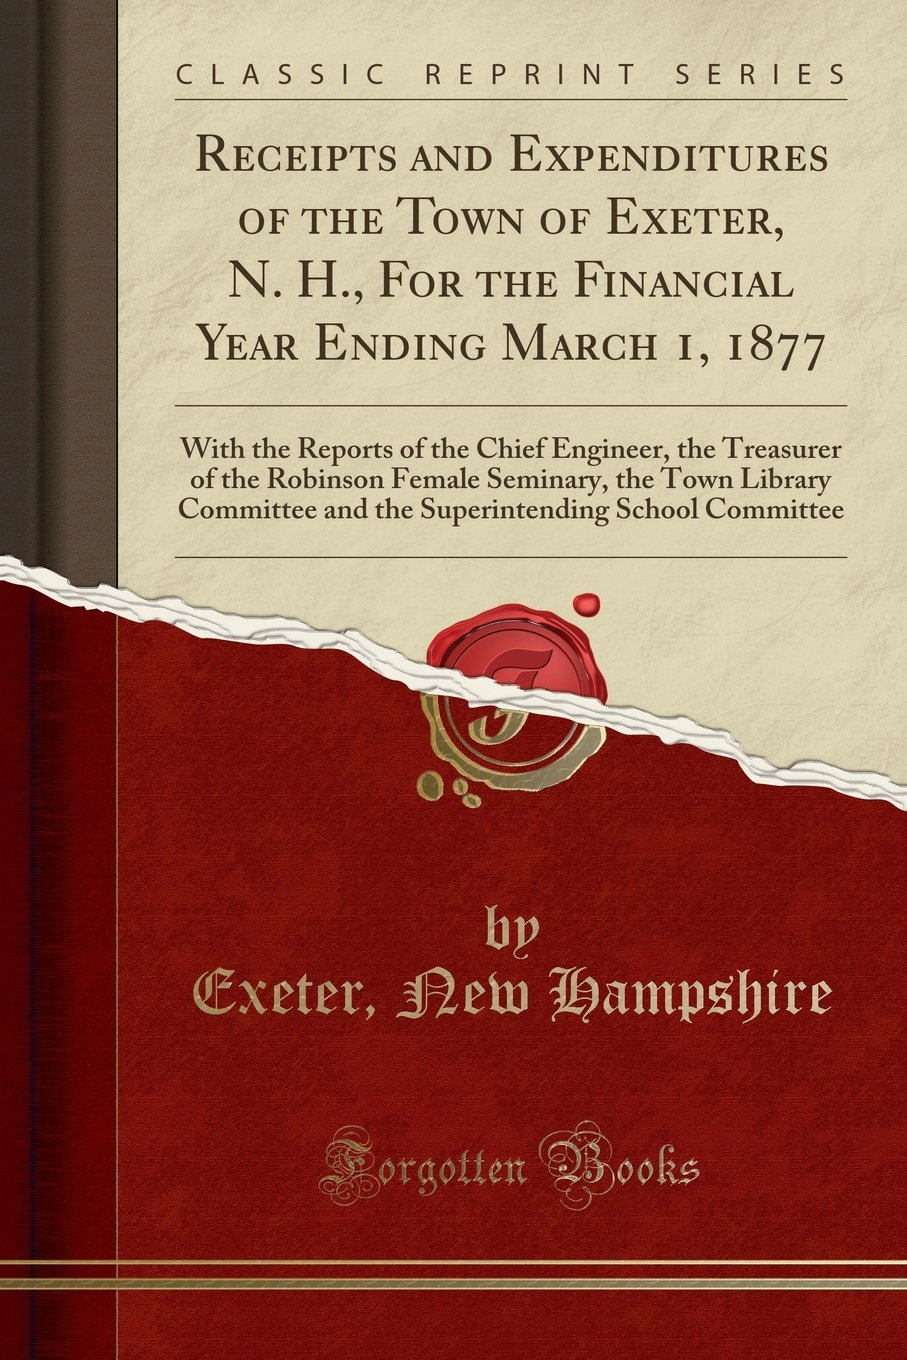 Download Receipts and Expenditures of the Town of Exeter, N. H., for the Financial Year Ending March 1, 1877: With the Reports of the Chief Engineer, the ... and the Superintending School Committee pdf